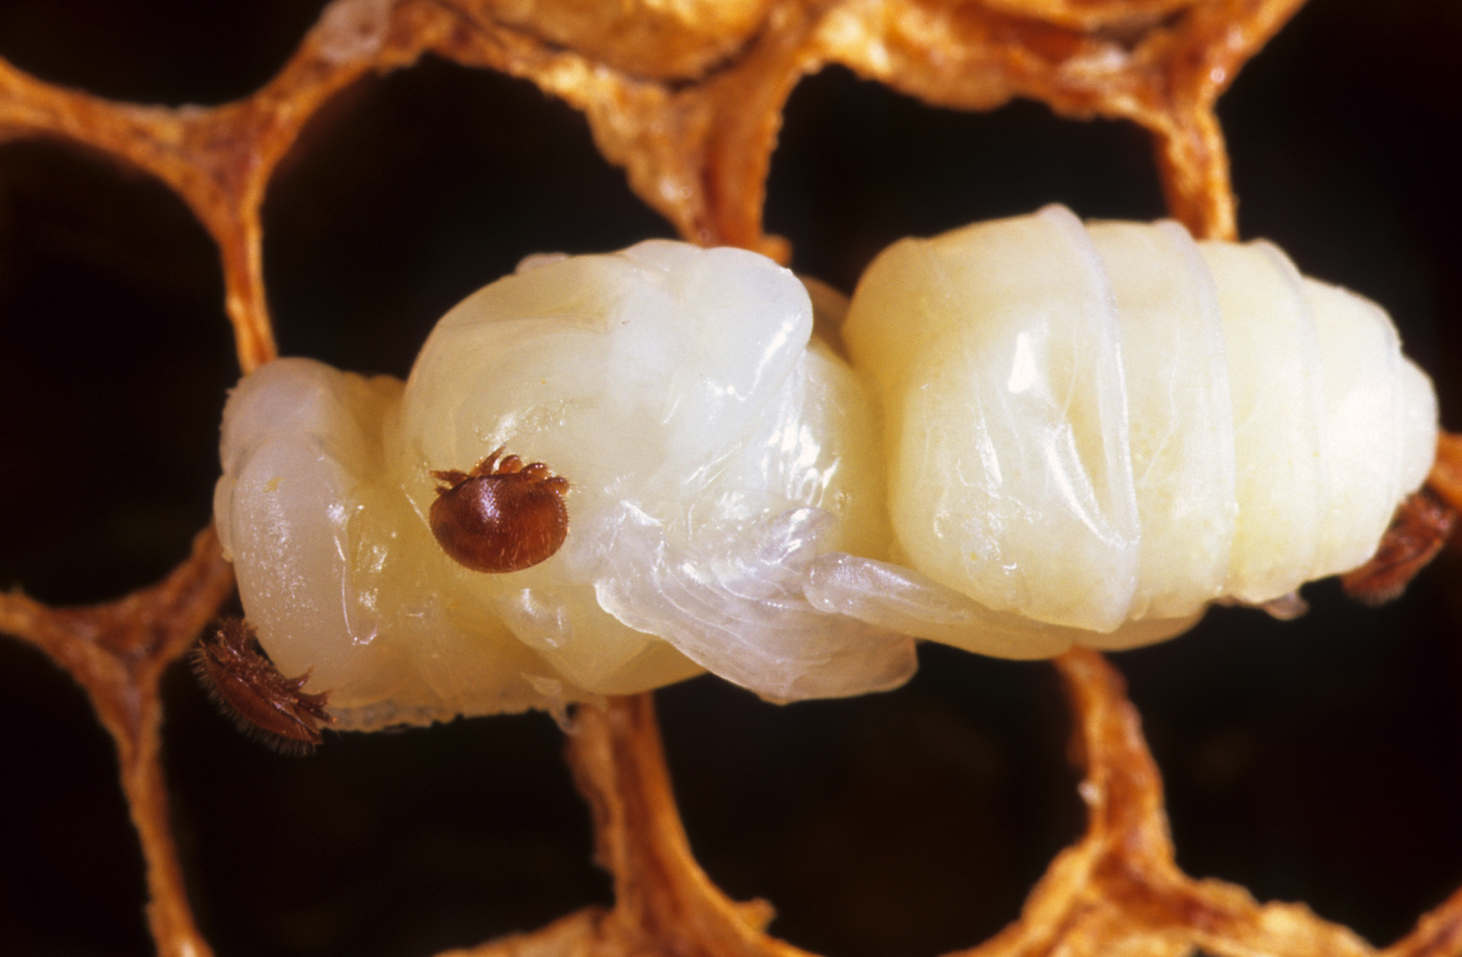 A Varroa mite on a bee pupae.